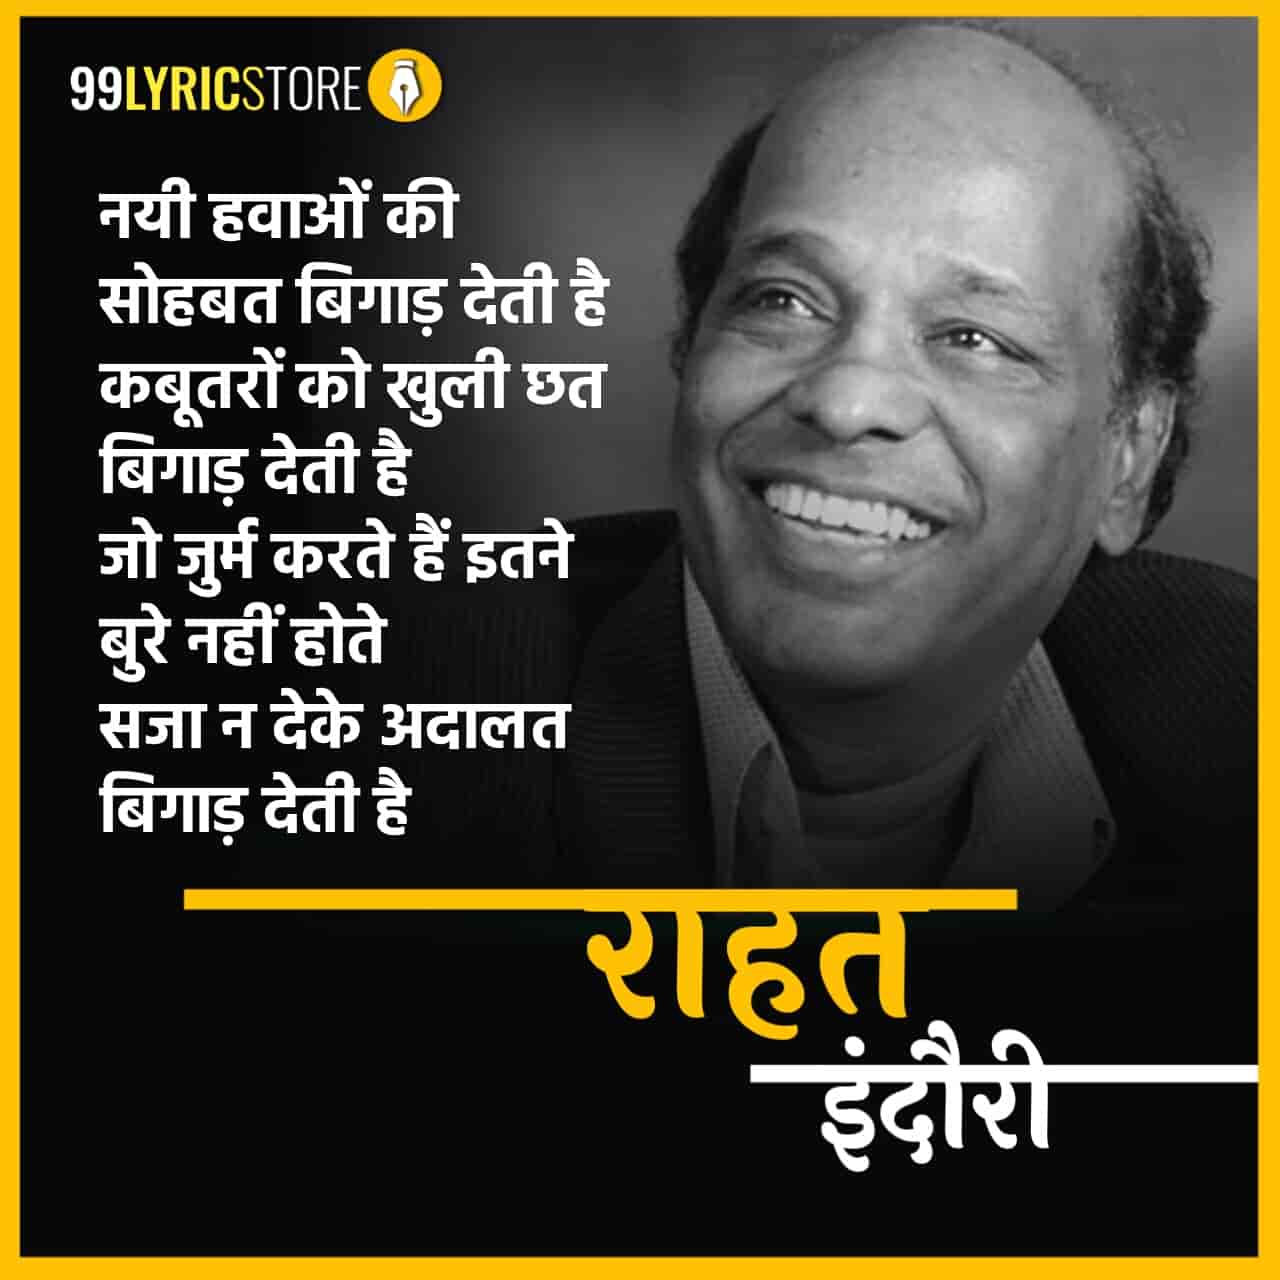 This beautiful Shayari 'Saza Na Deke Adaalat Bigaad Deti Hai' has written and performed by Rahat Indori.